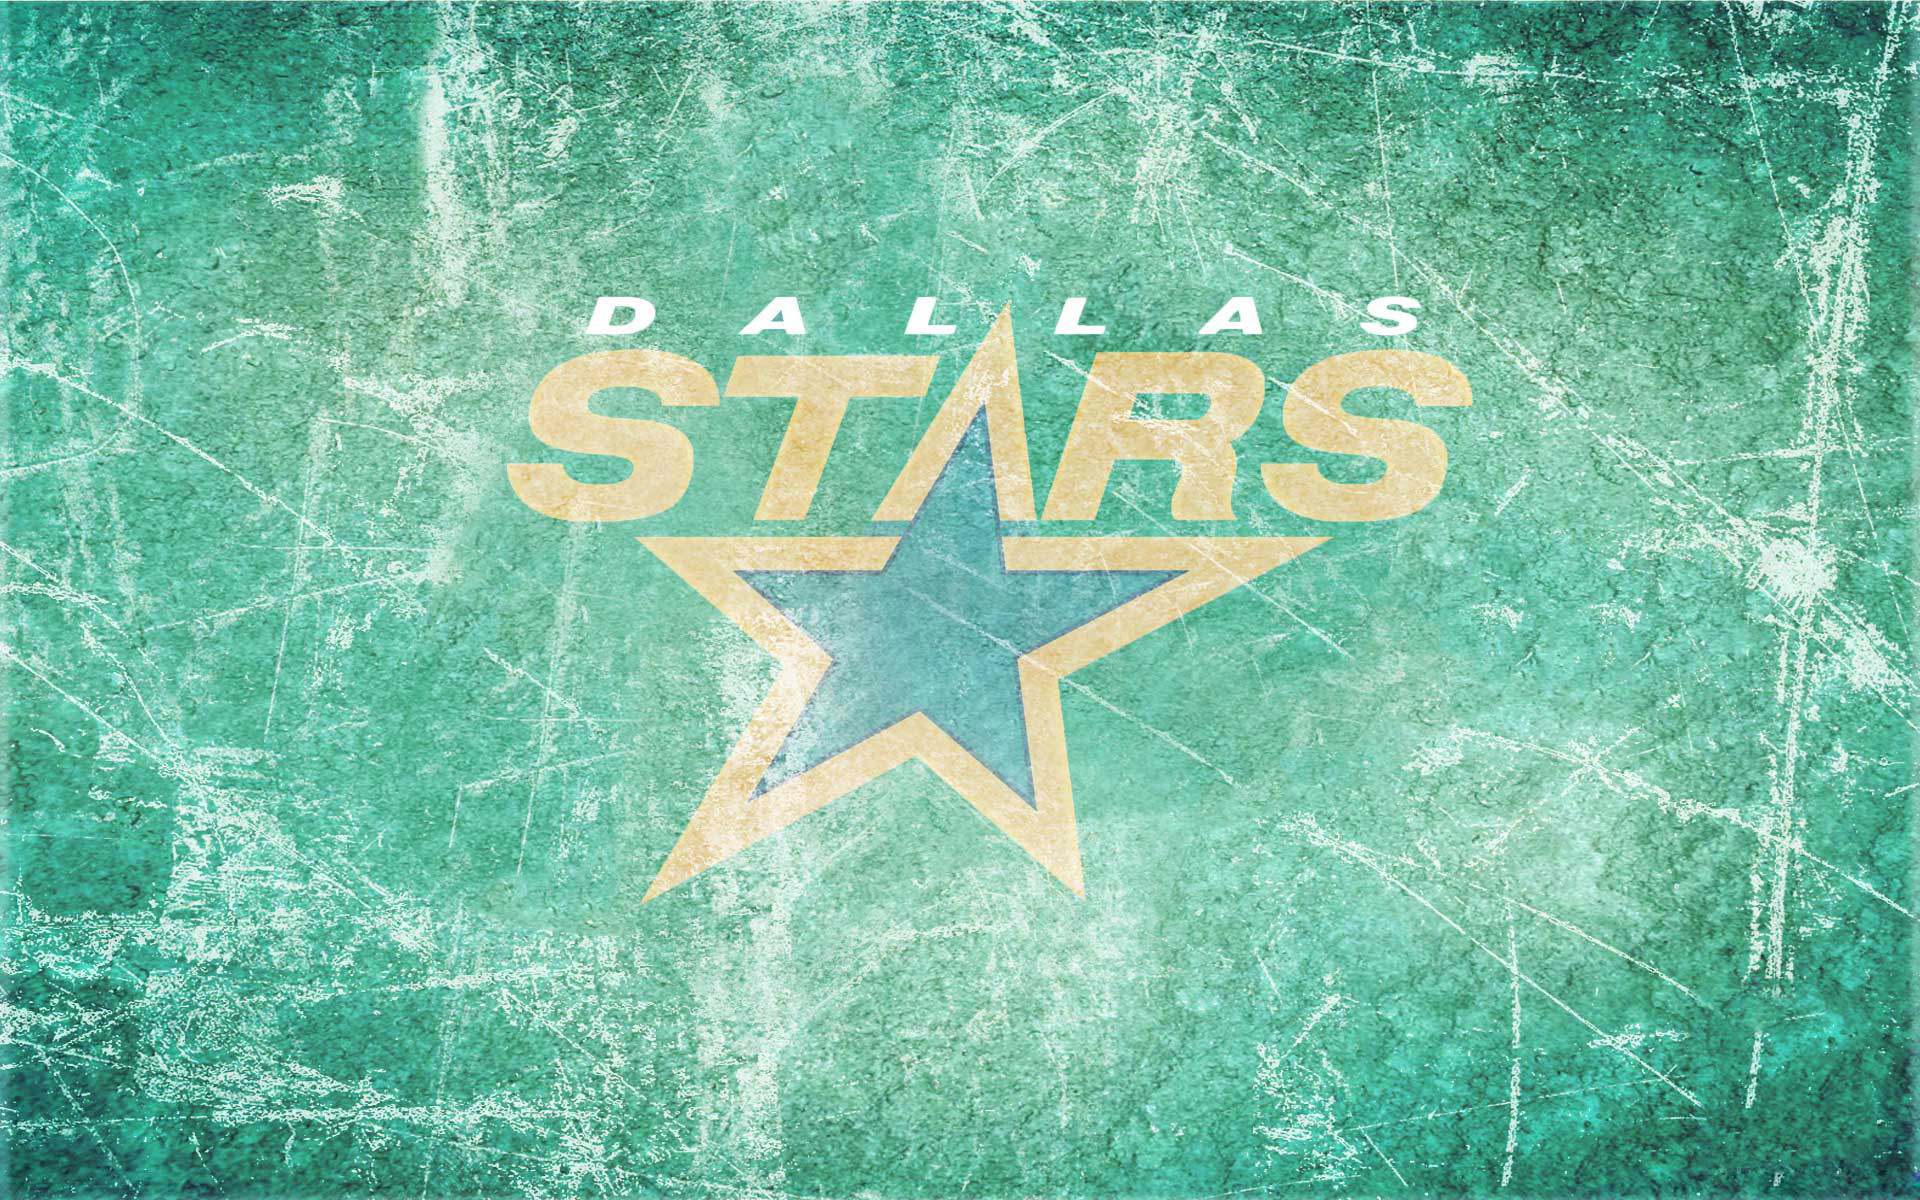 Dallas Stars Wallpapers HD HD Wallpapers Backgrounds Images Art 192FRoS3